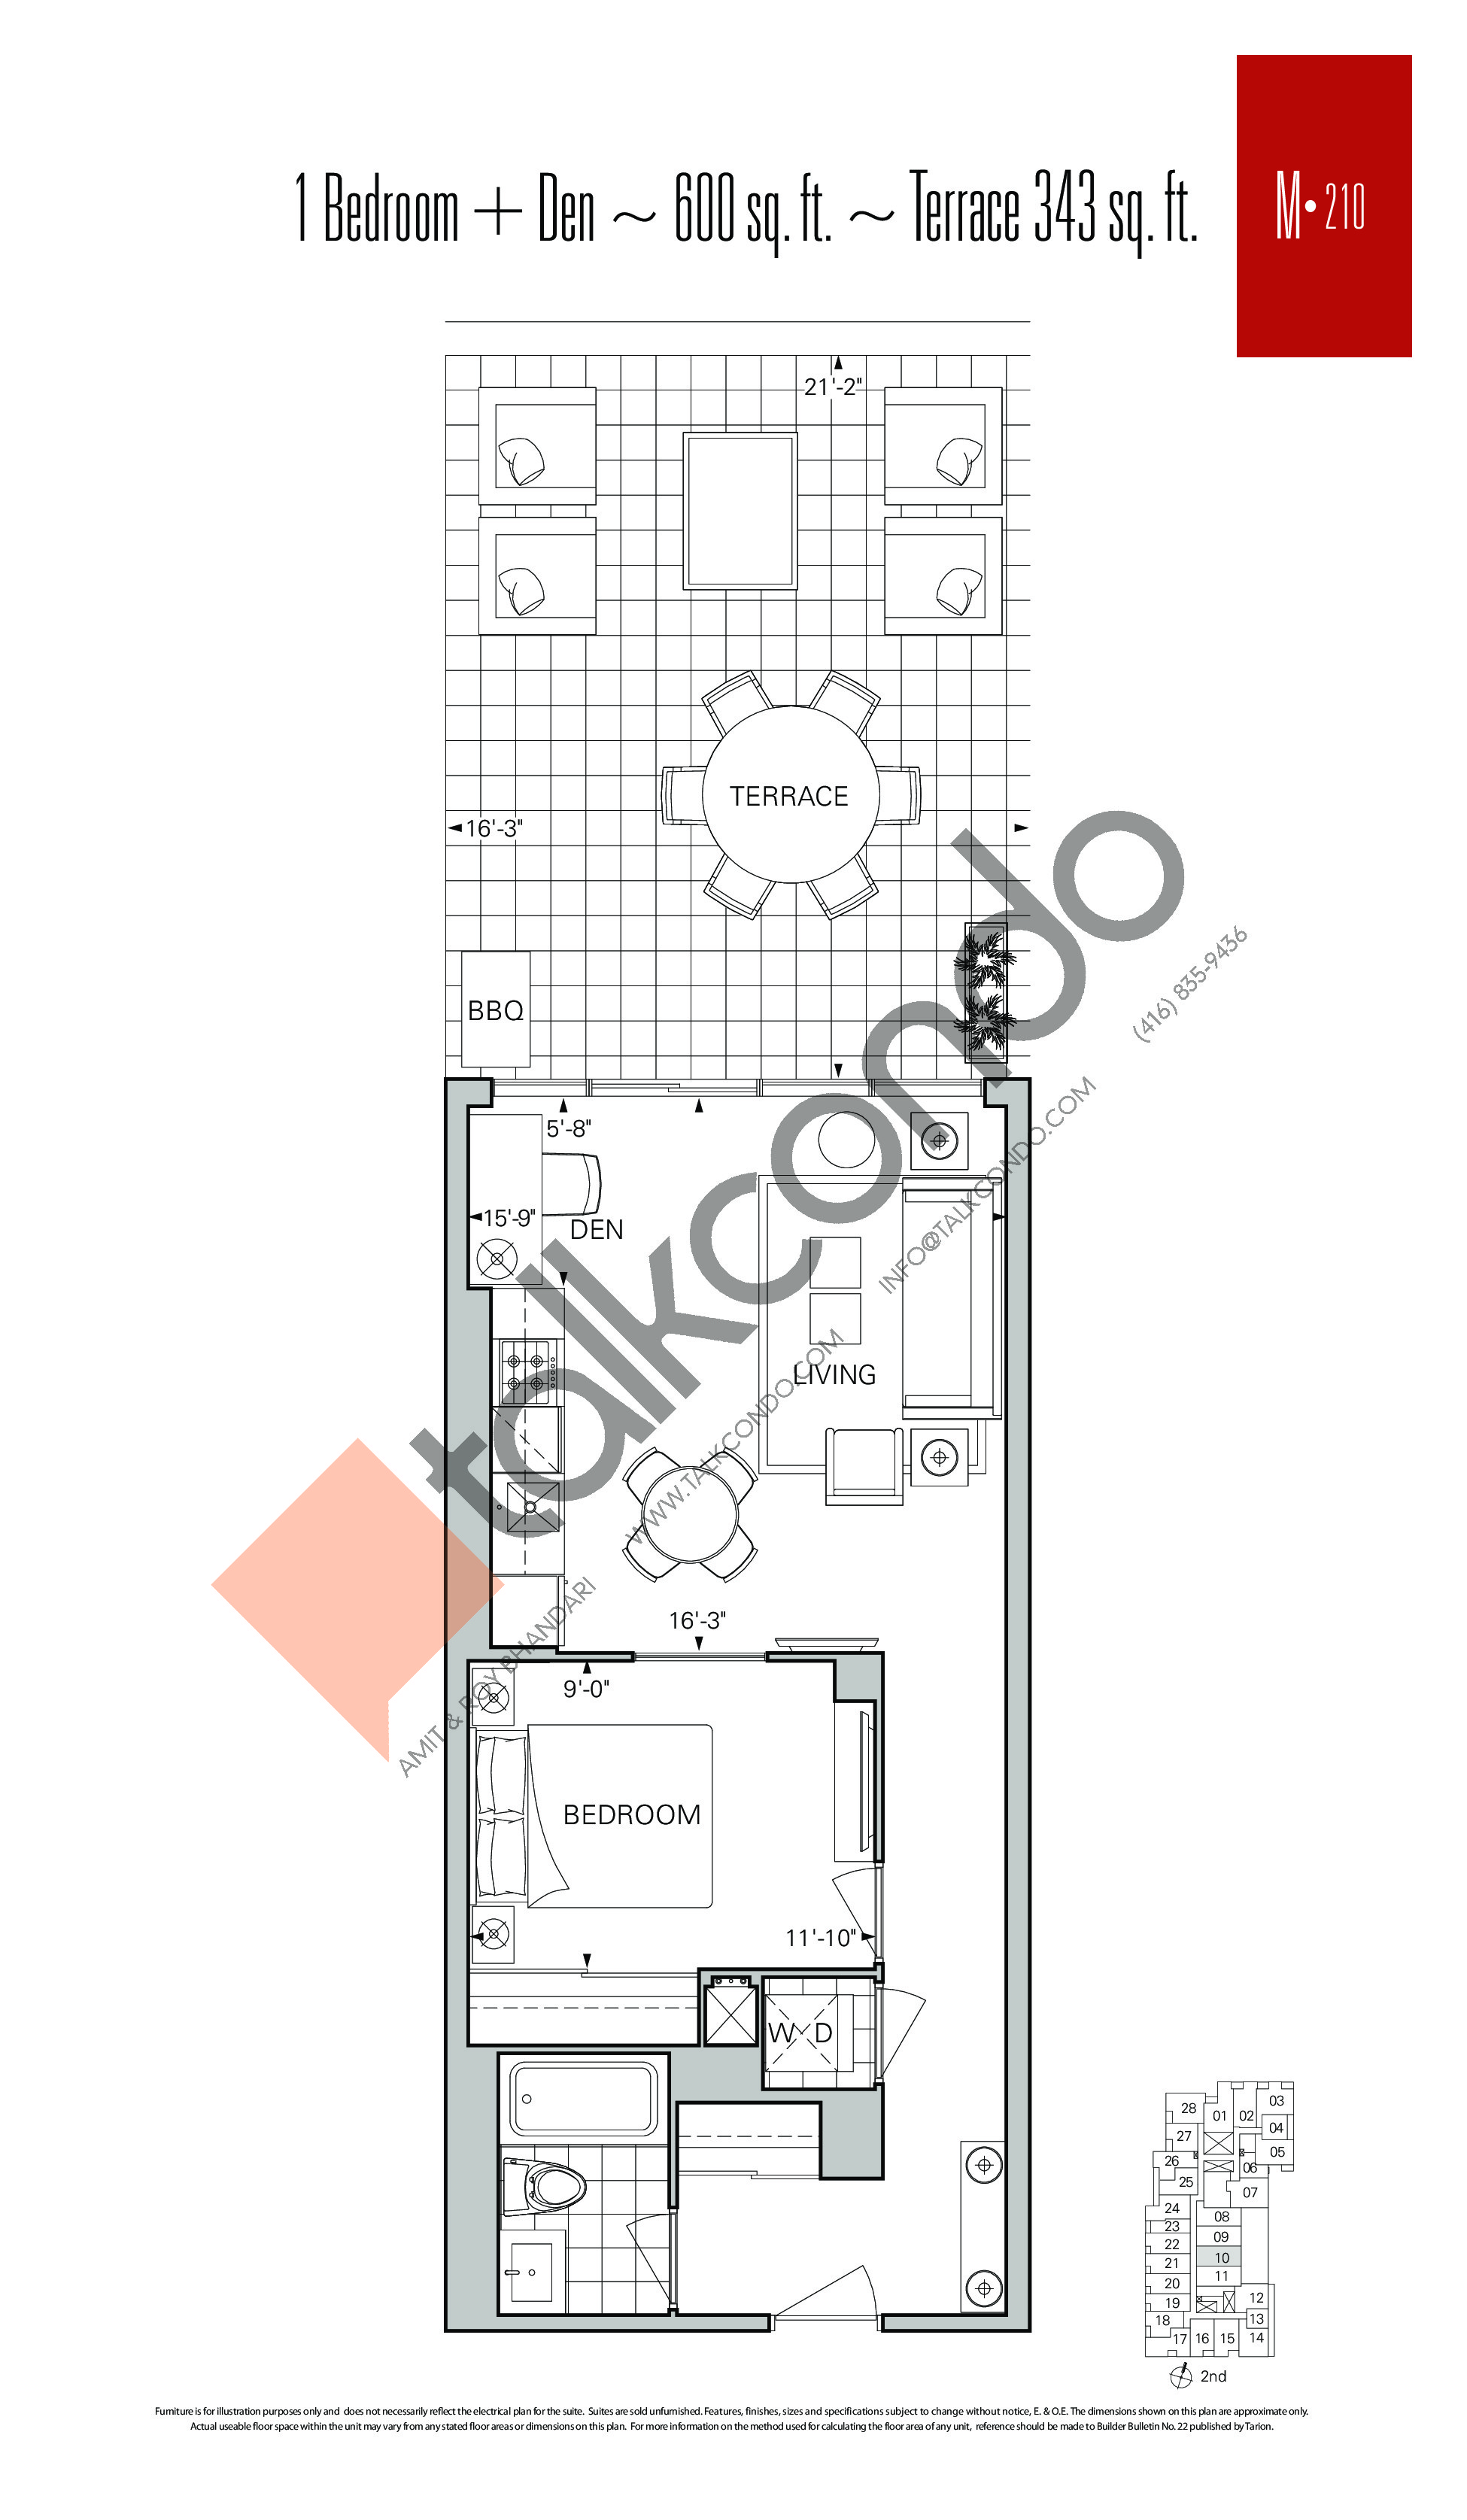 M-210 Floor Plan at Rise Condos - 600 sq.ft